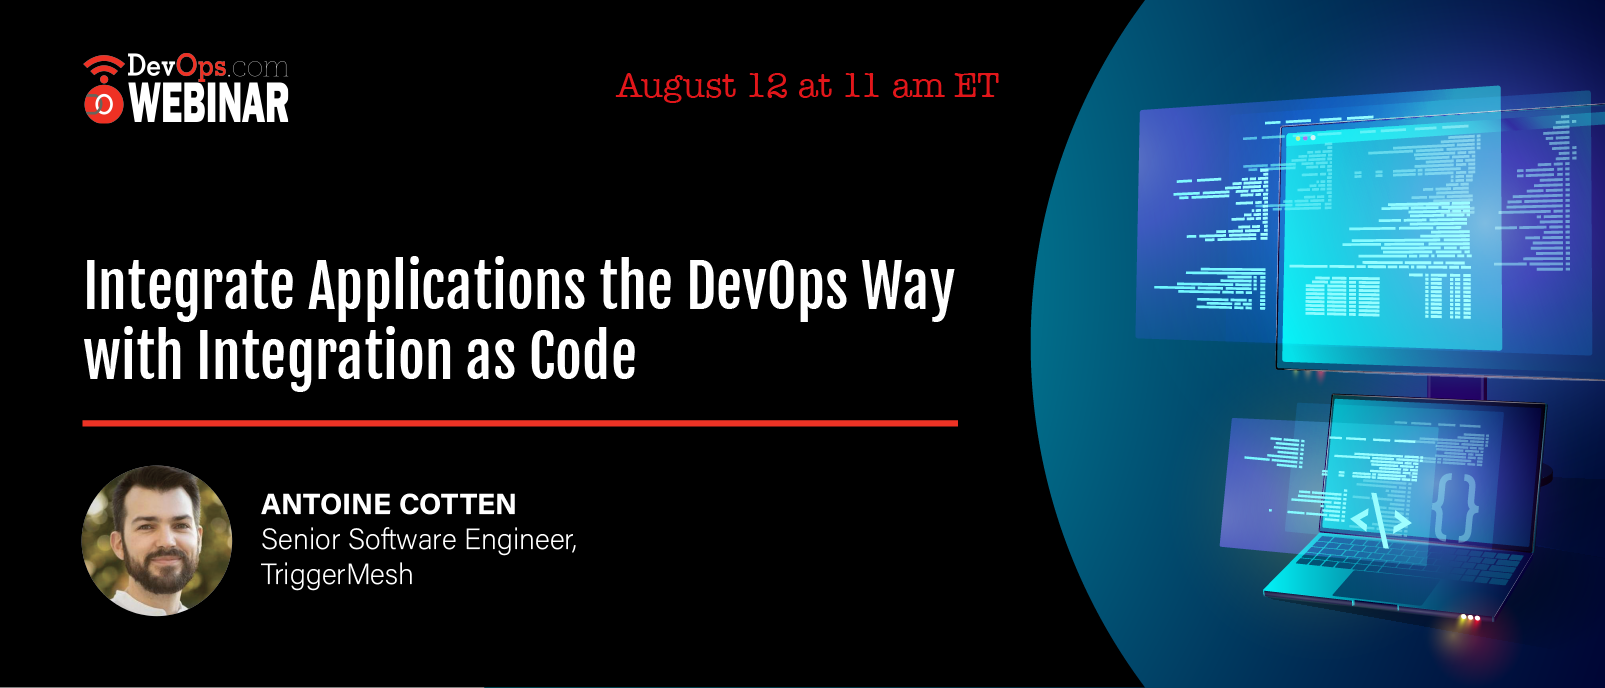 Integrate Applications the DevOps Way With Integration as Code